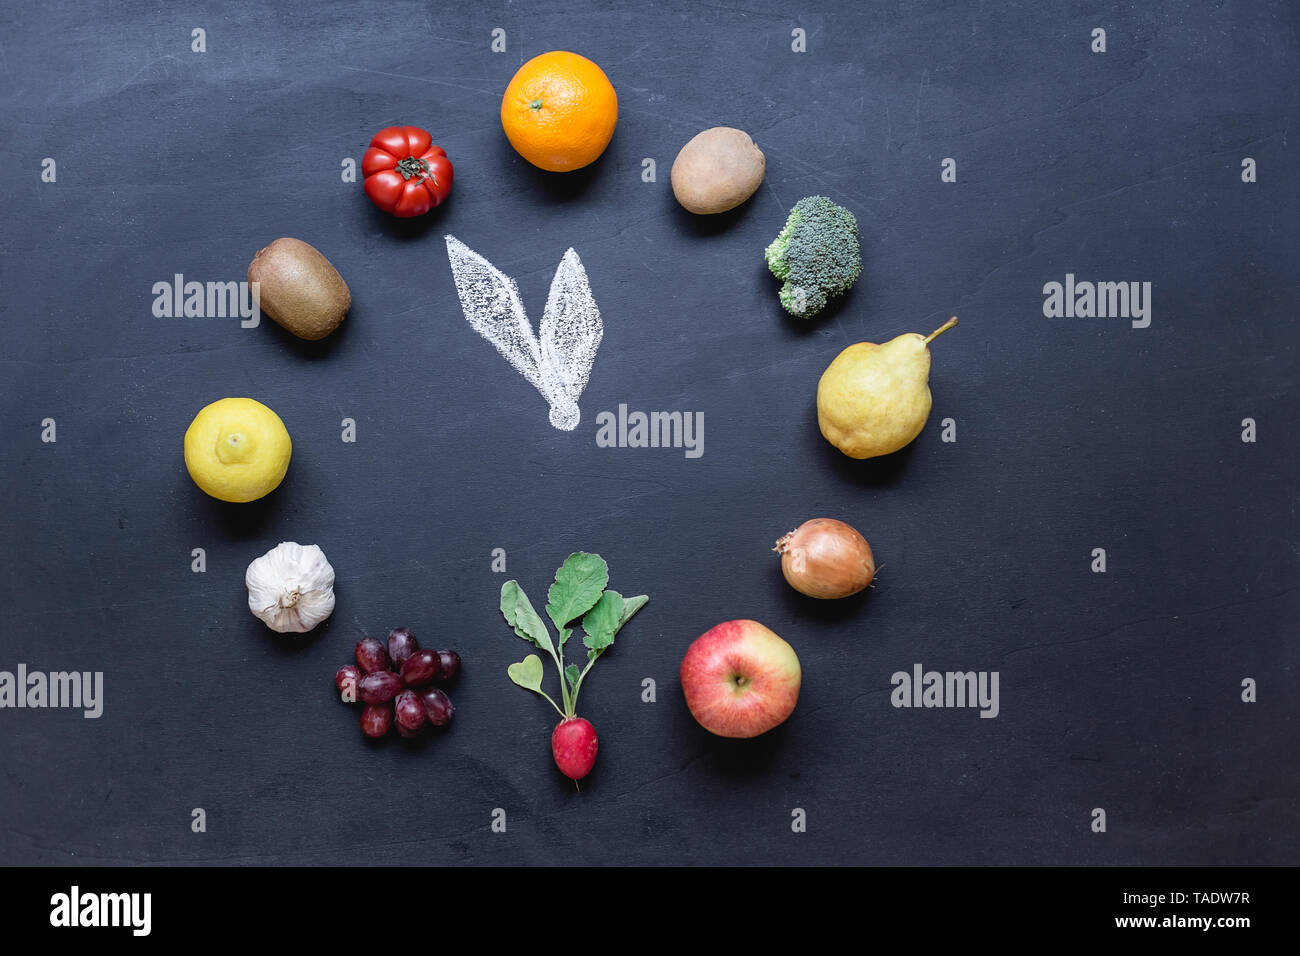 Fruits and vegetables buliding clock on dark ground with - Stock Image